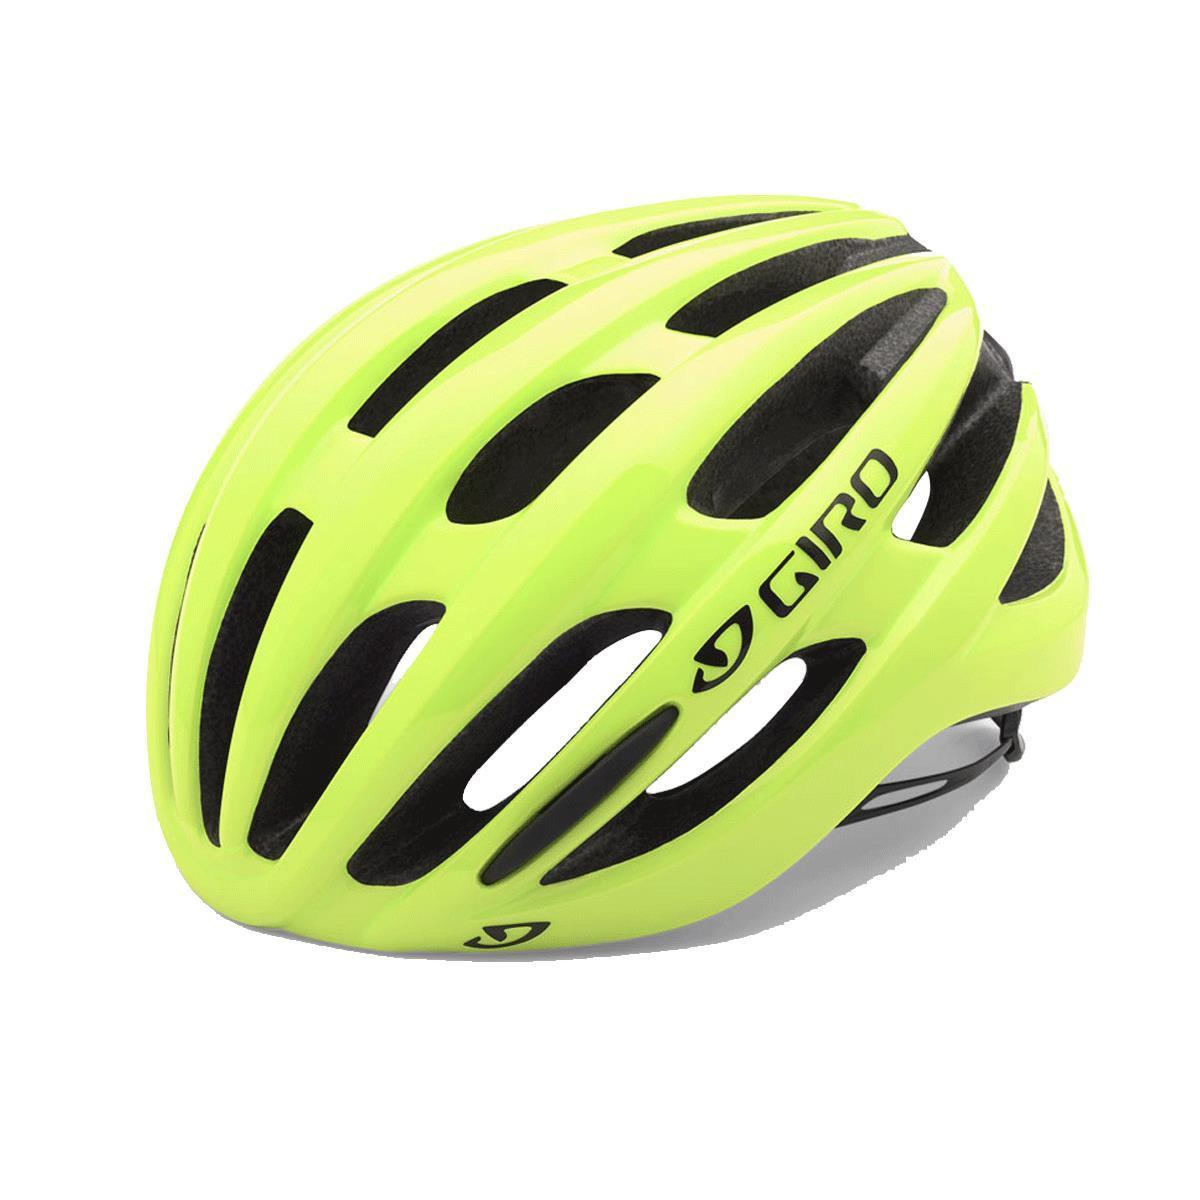 Details about Giro Foray Road Cycle Bicycle Bike Helmet Highlight Yellow -  3 Sizes 997776290